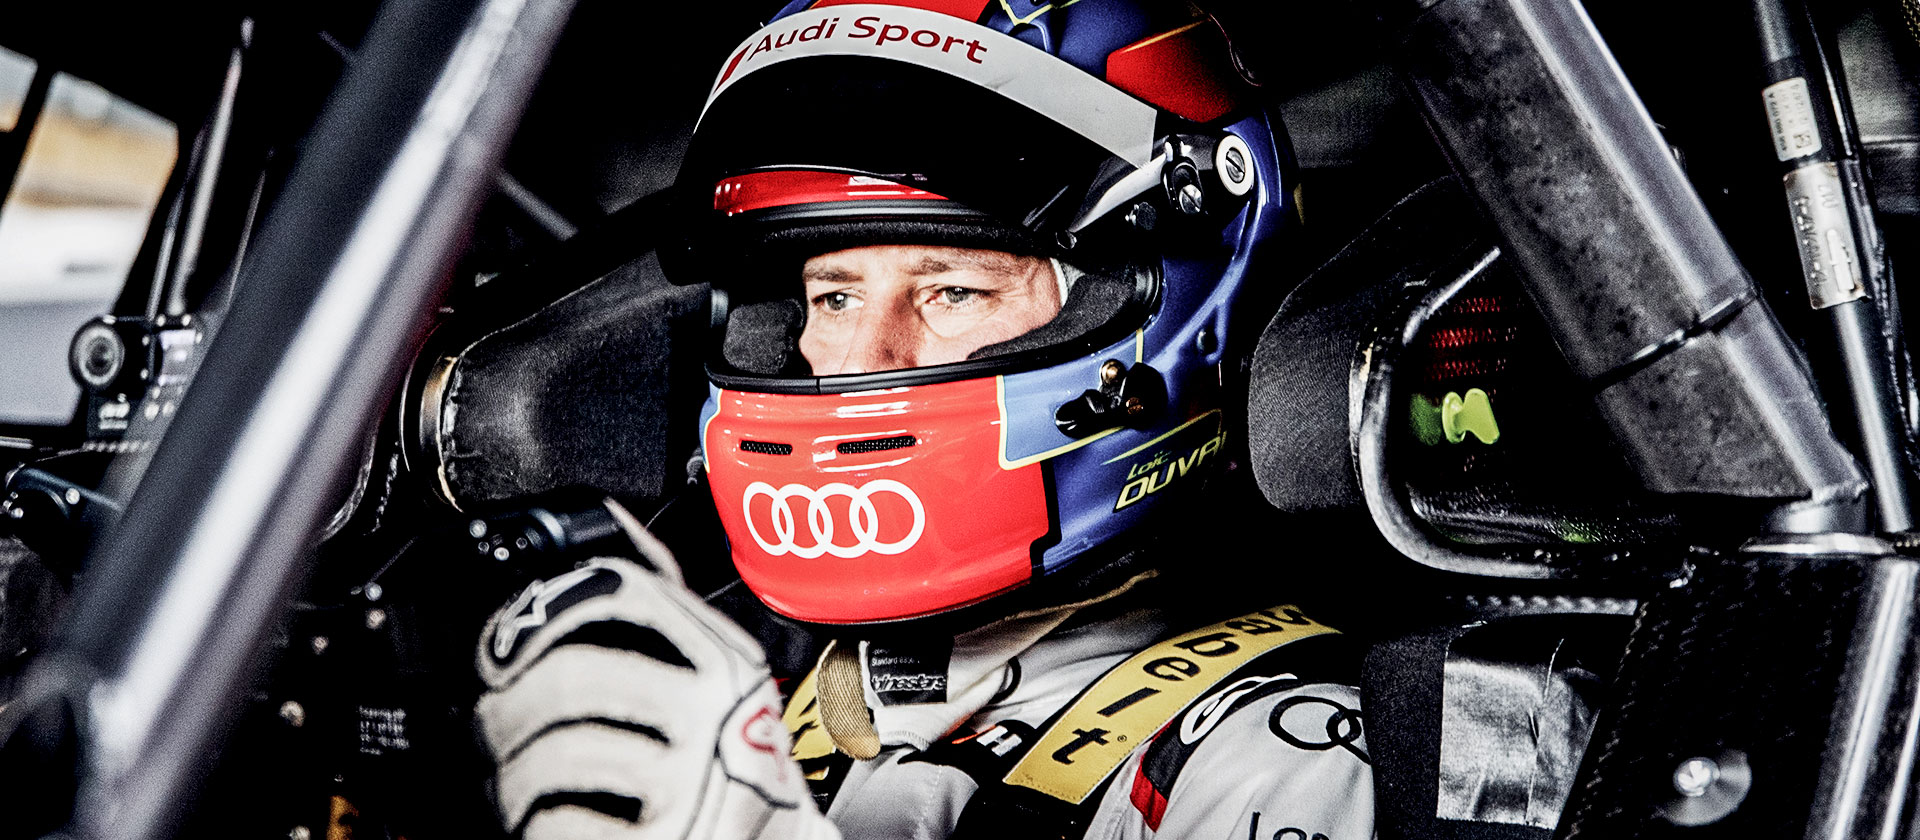 Loïc Duval in the Audi RS 5 DTM